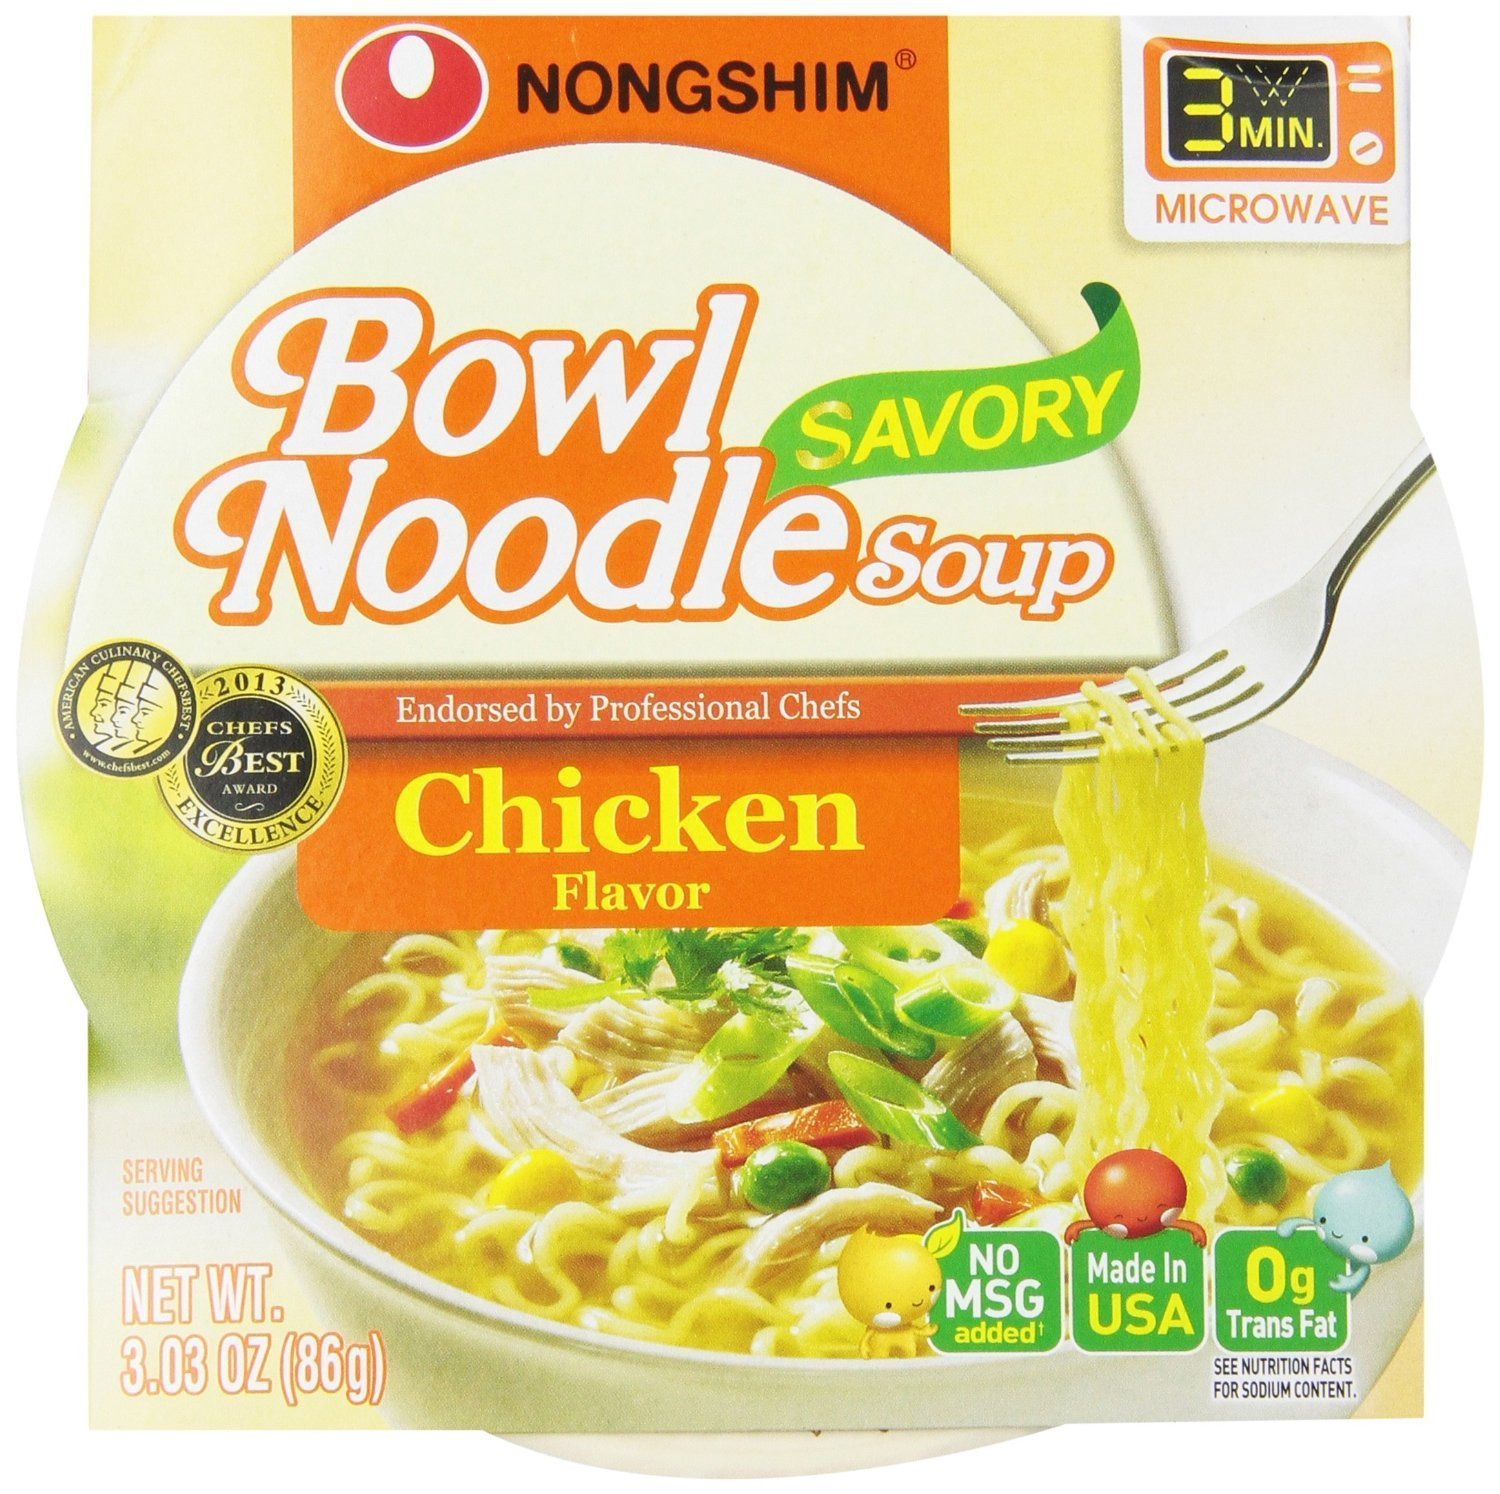 Fashionable NongShim Bowl Noodle Soup 1 year warranty Chicken 6 3.03 Pack Ounce of